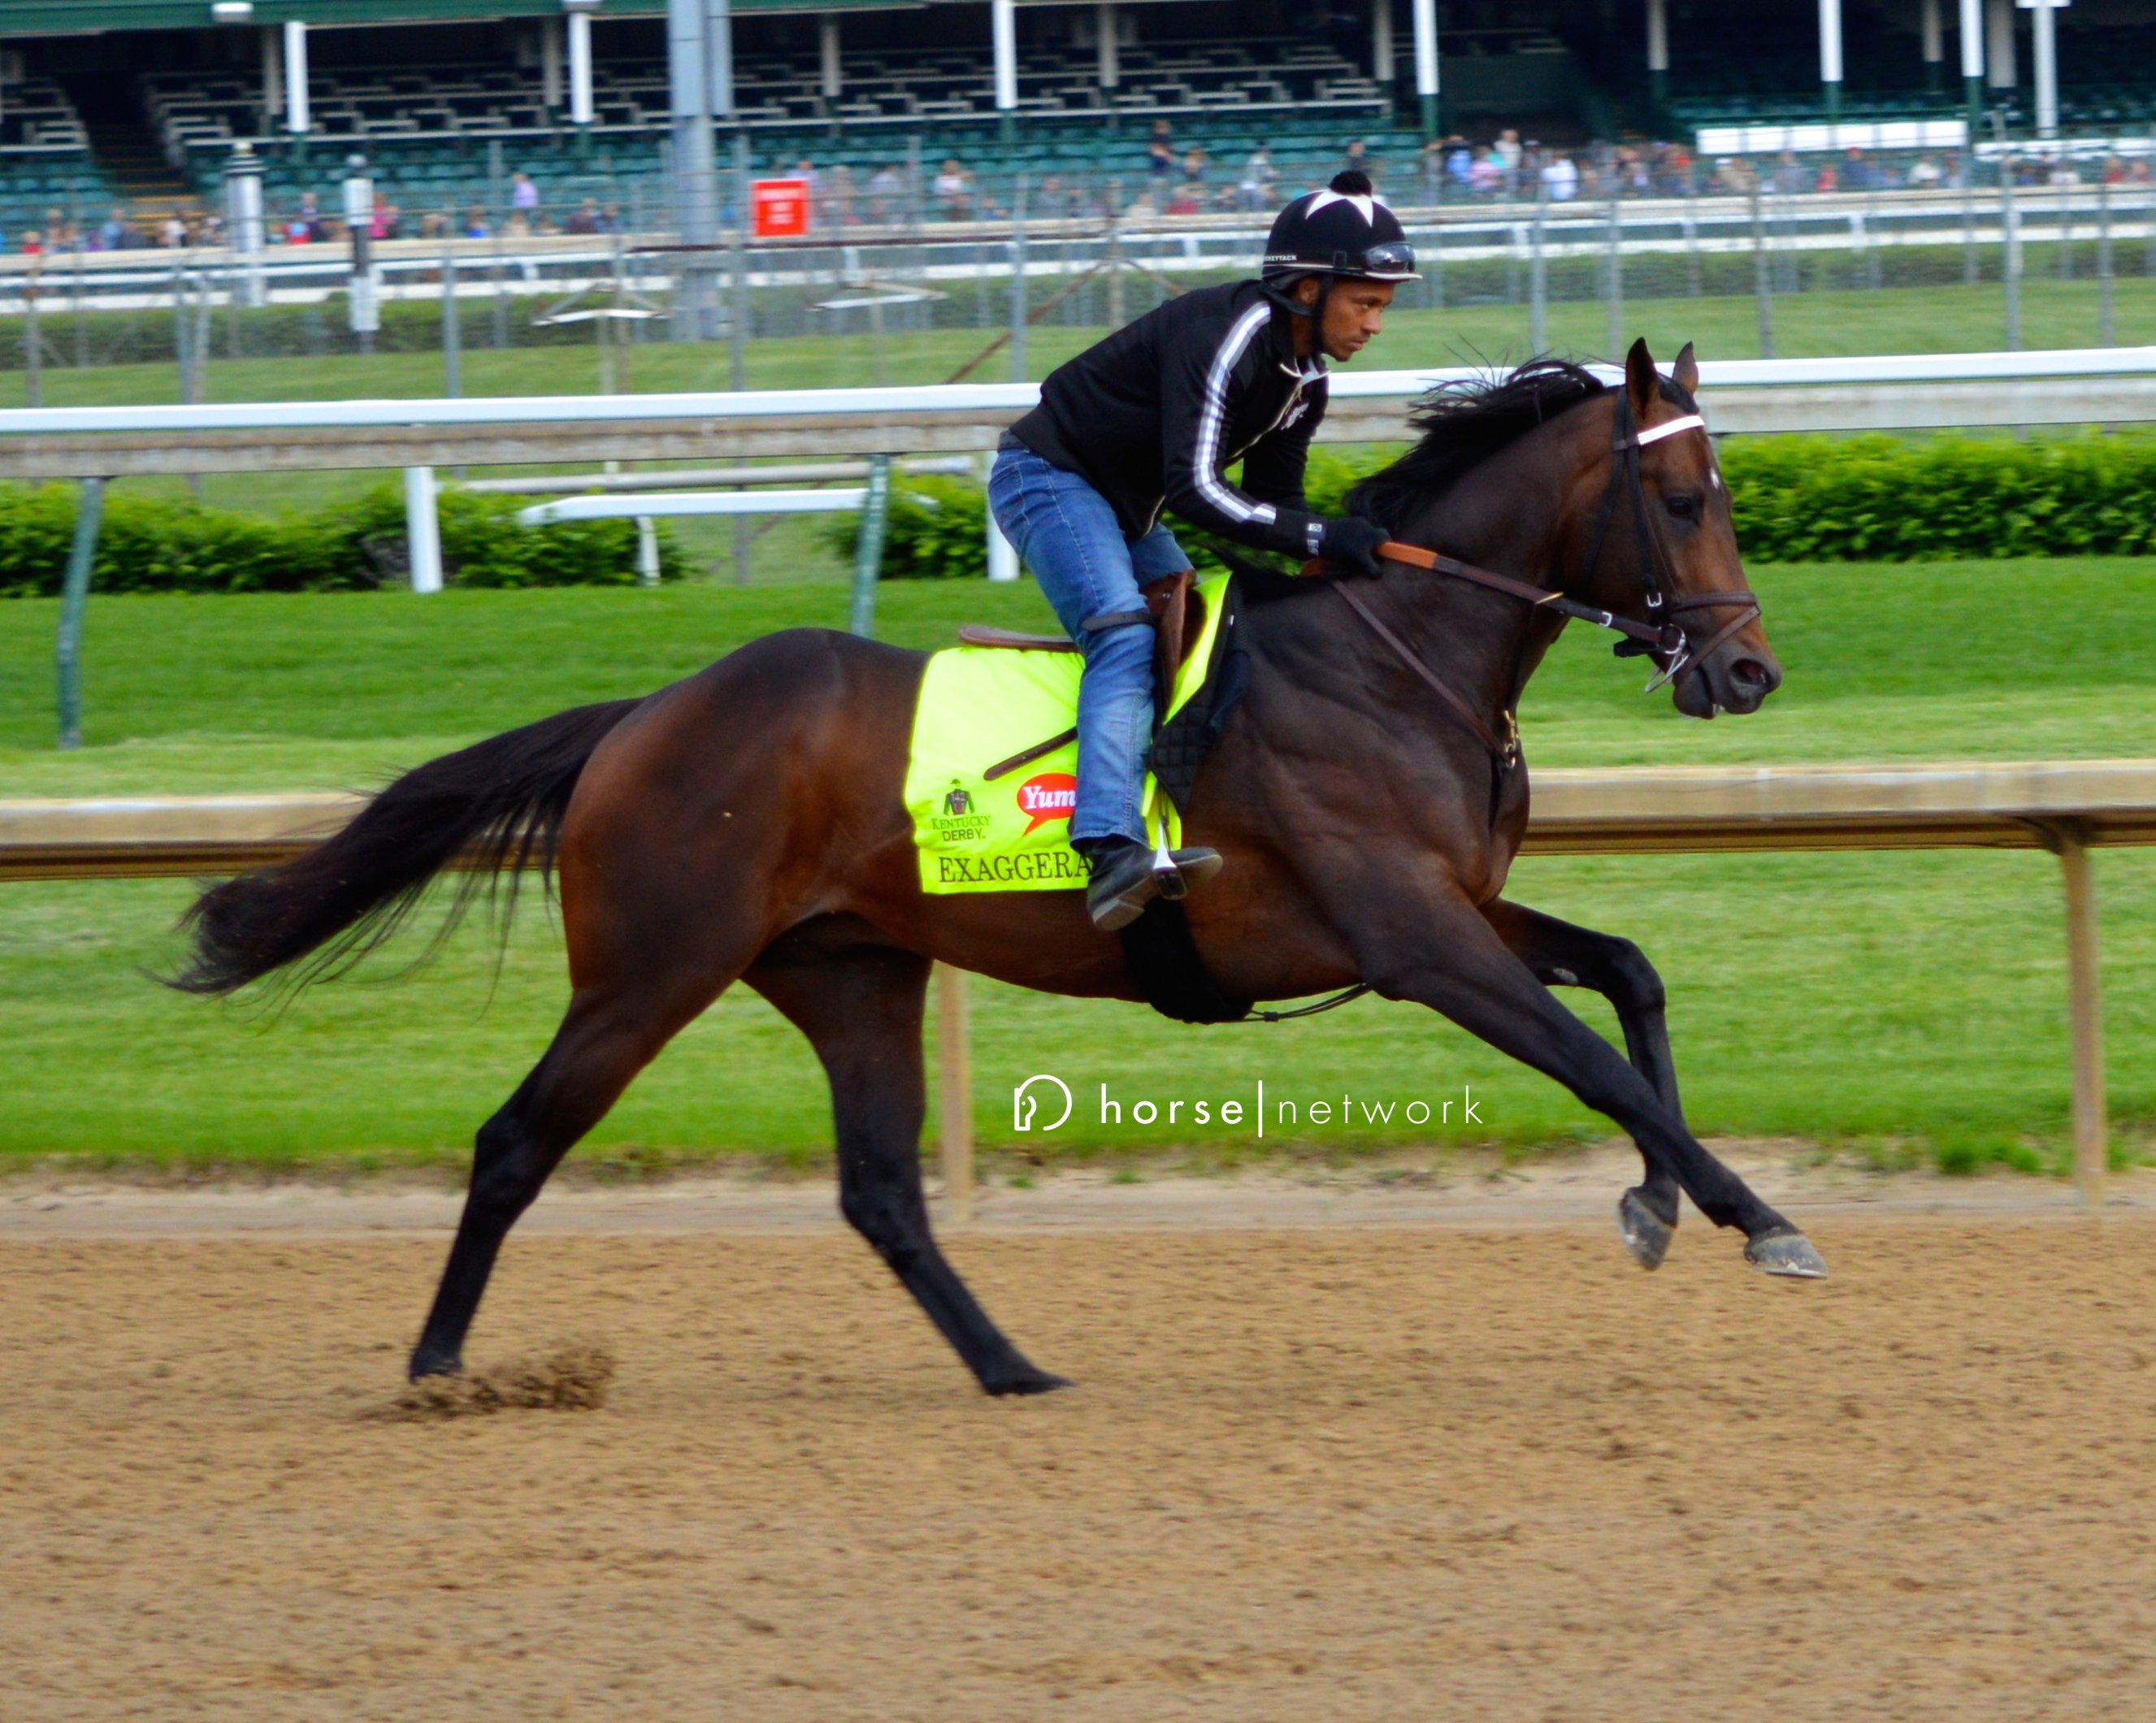 Kentucky Derby contender Exaggerator shows off his powerful stride.